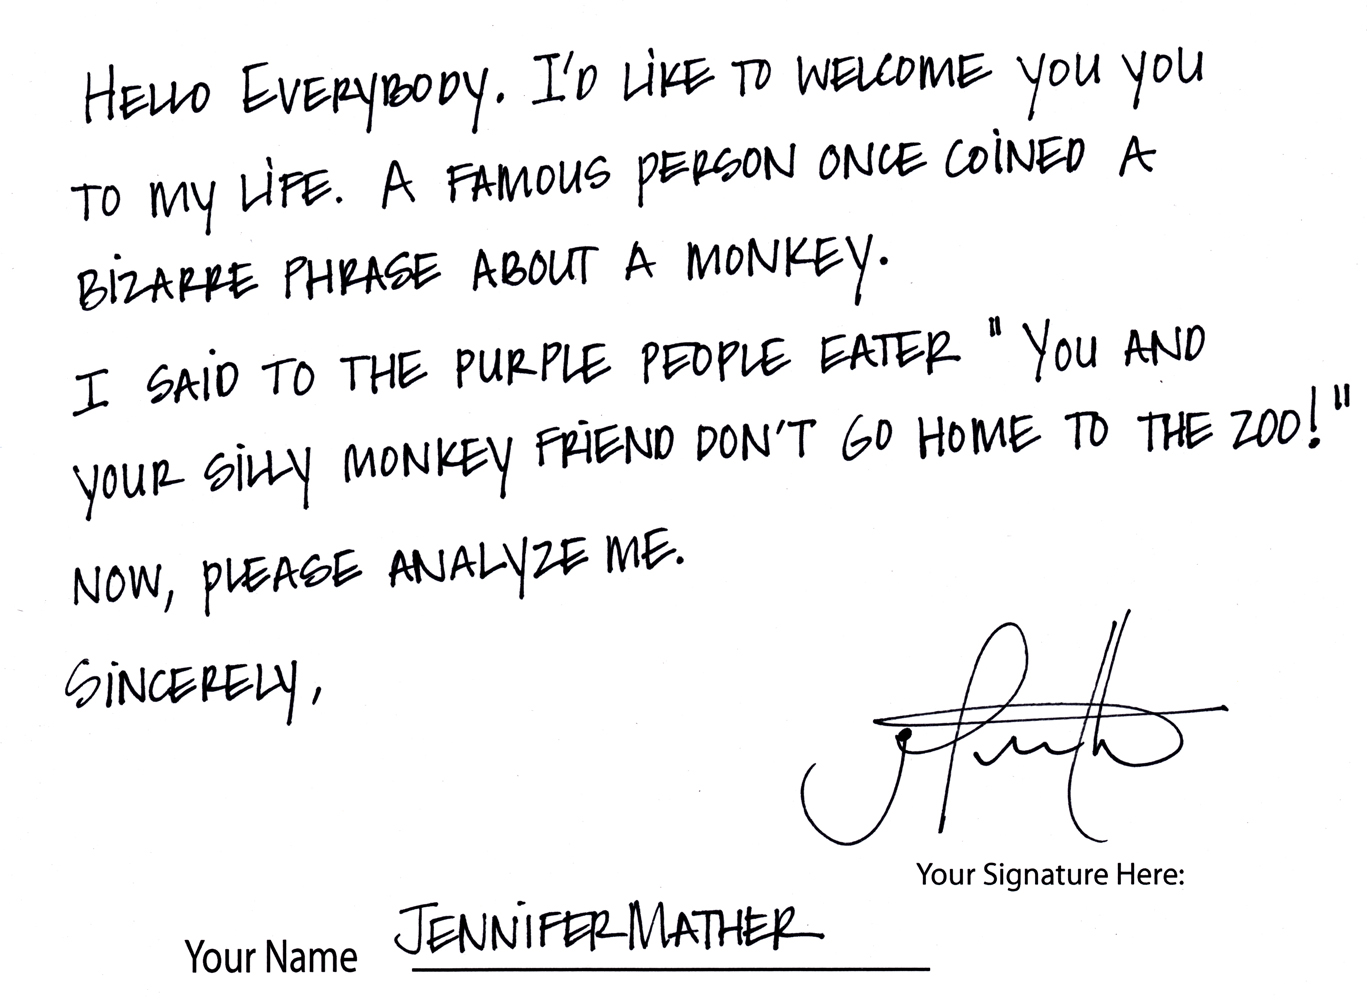 Jennifer M Cursive Handwriting Sample Download The Image File Here Or